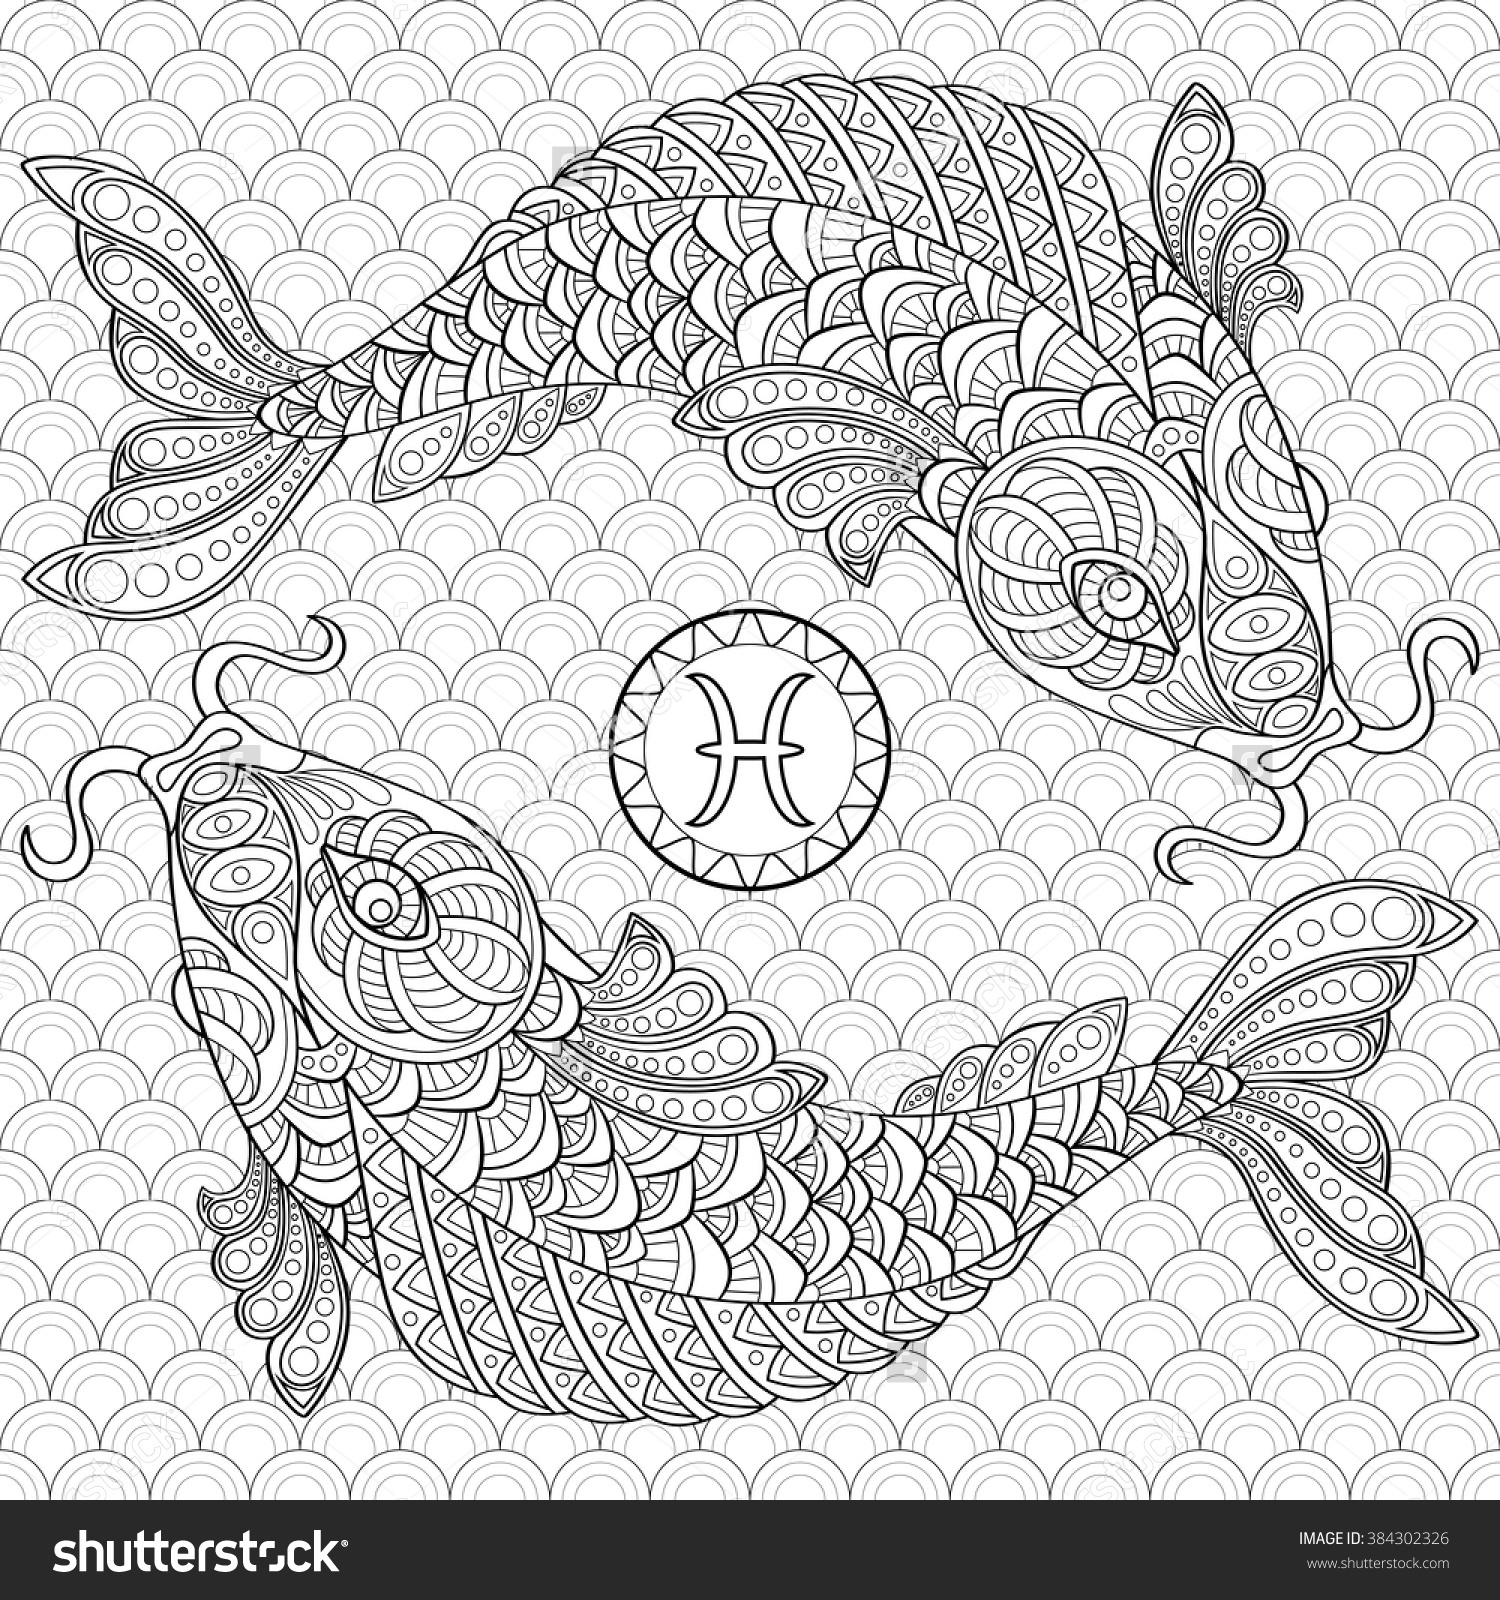 Pisces coloring #6, Download drawings